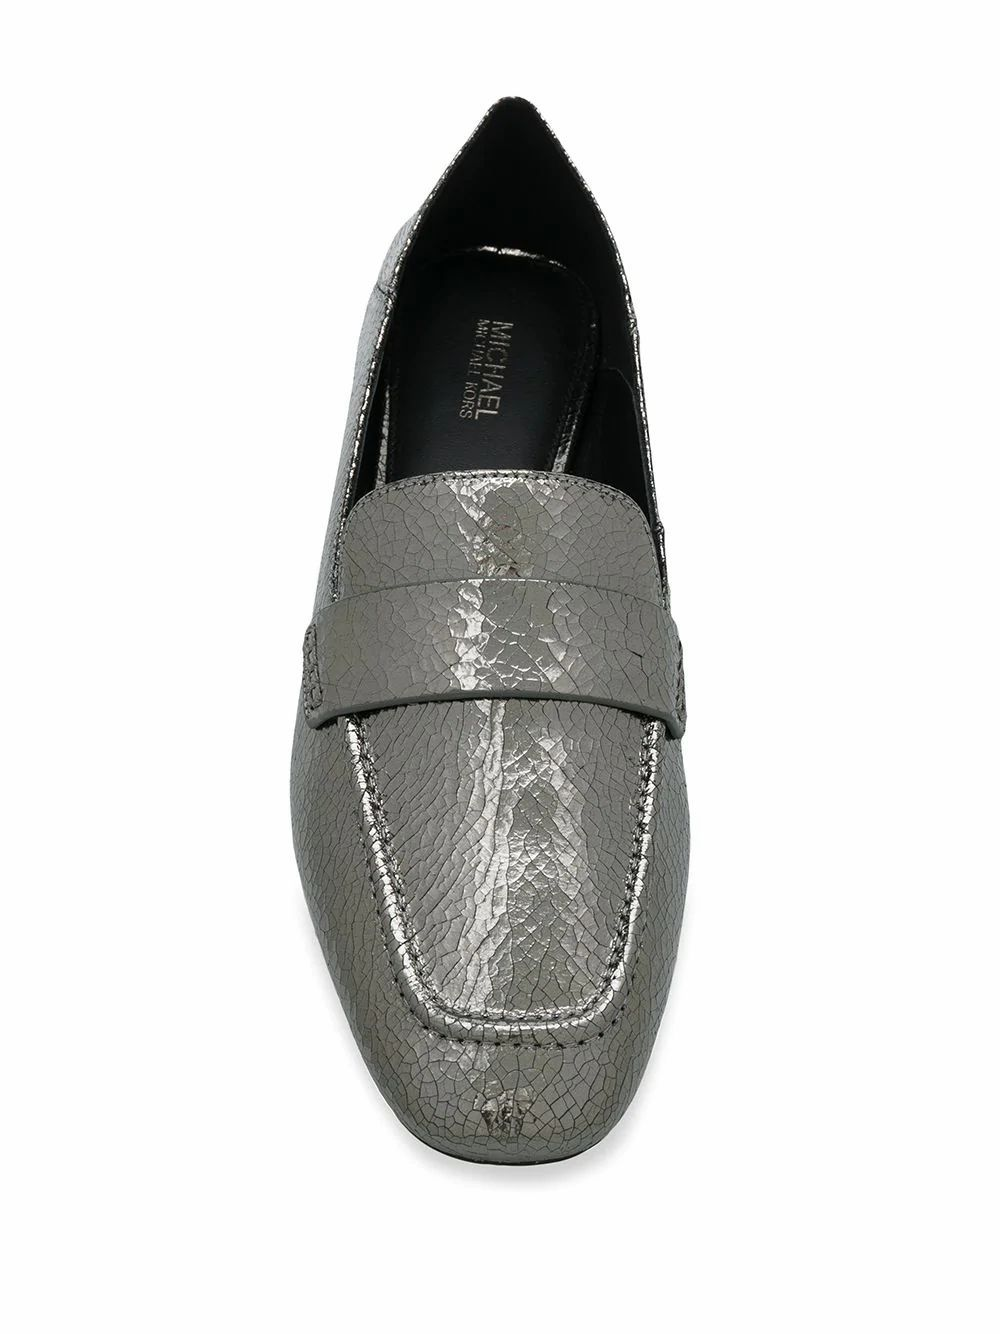 MICHAEL KORS WOMEN'S 40R0EMFR1M992 SILVER FAUX LEATHER LOAFERS